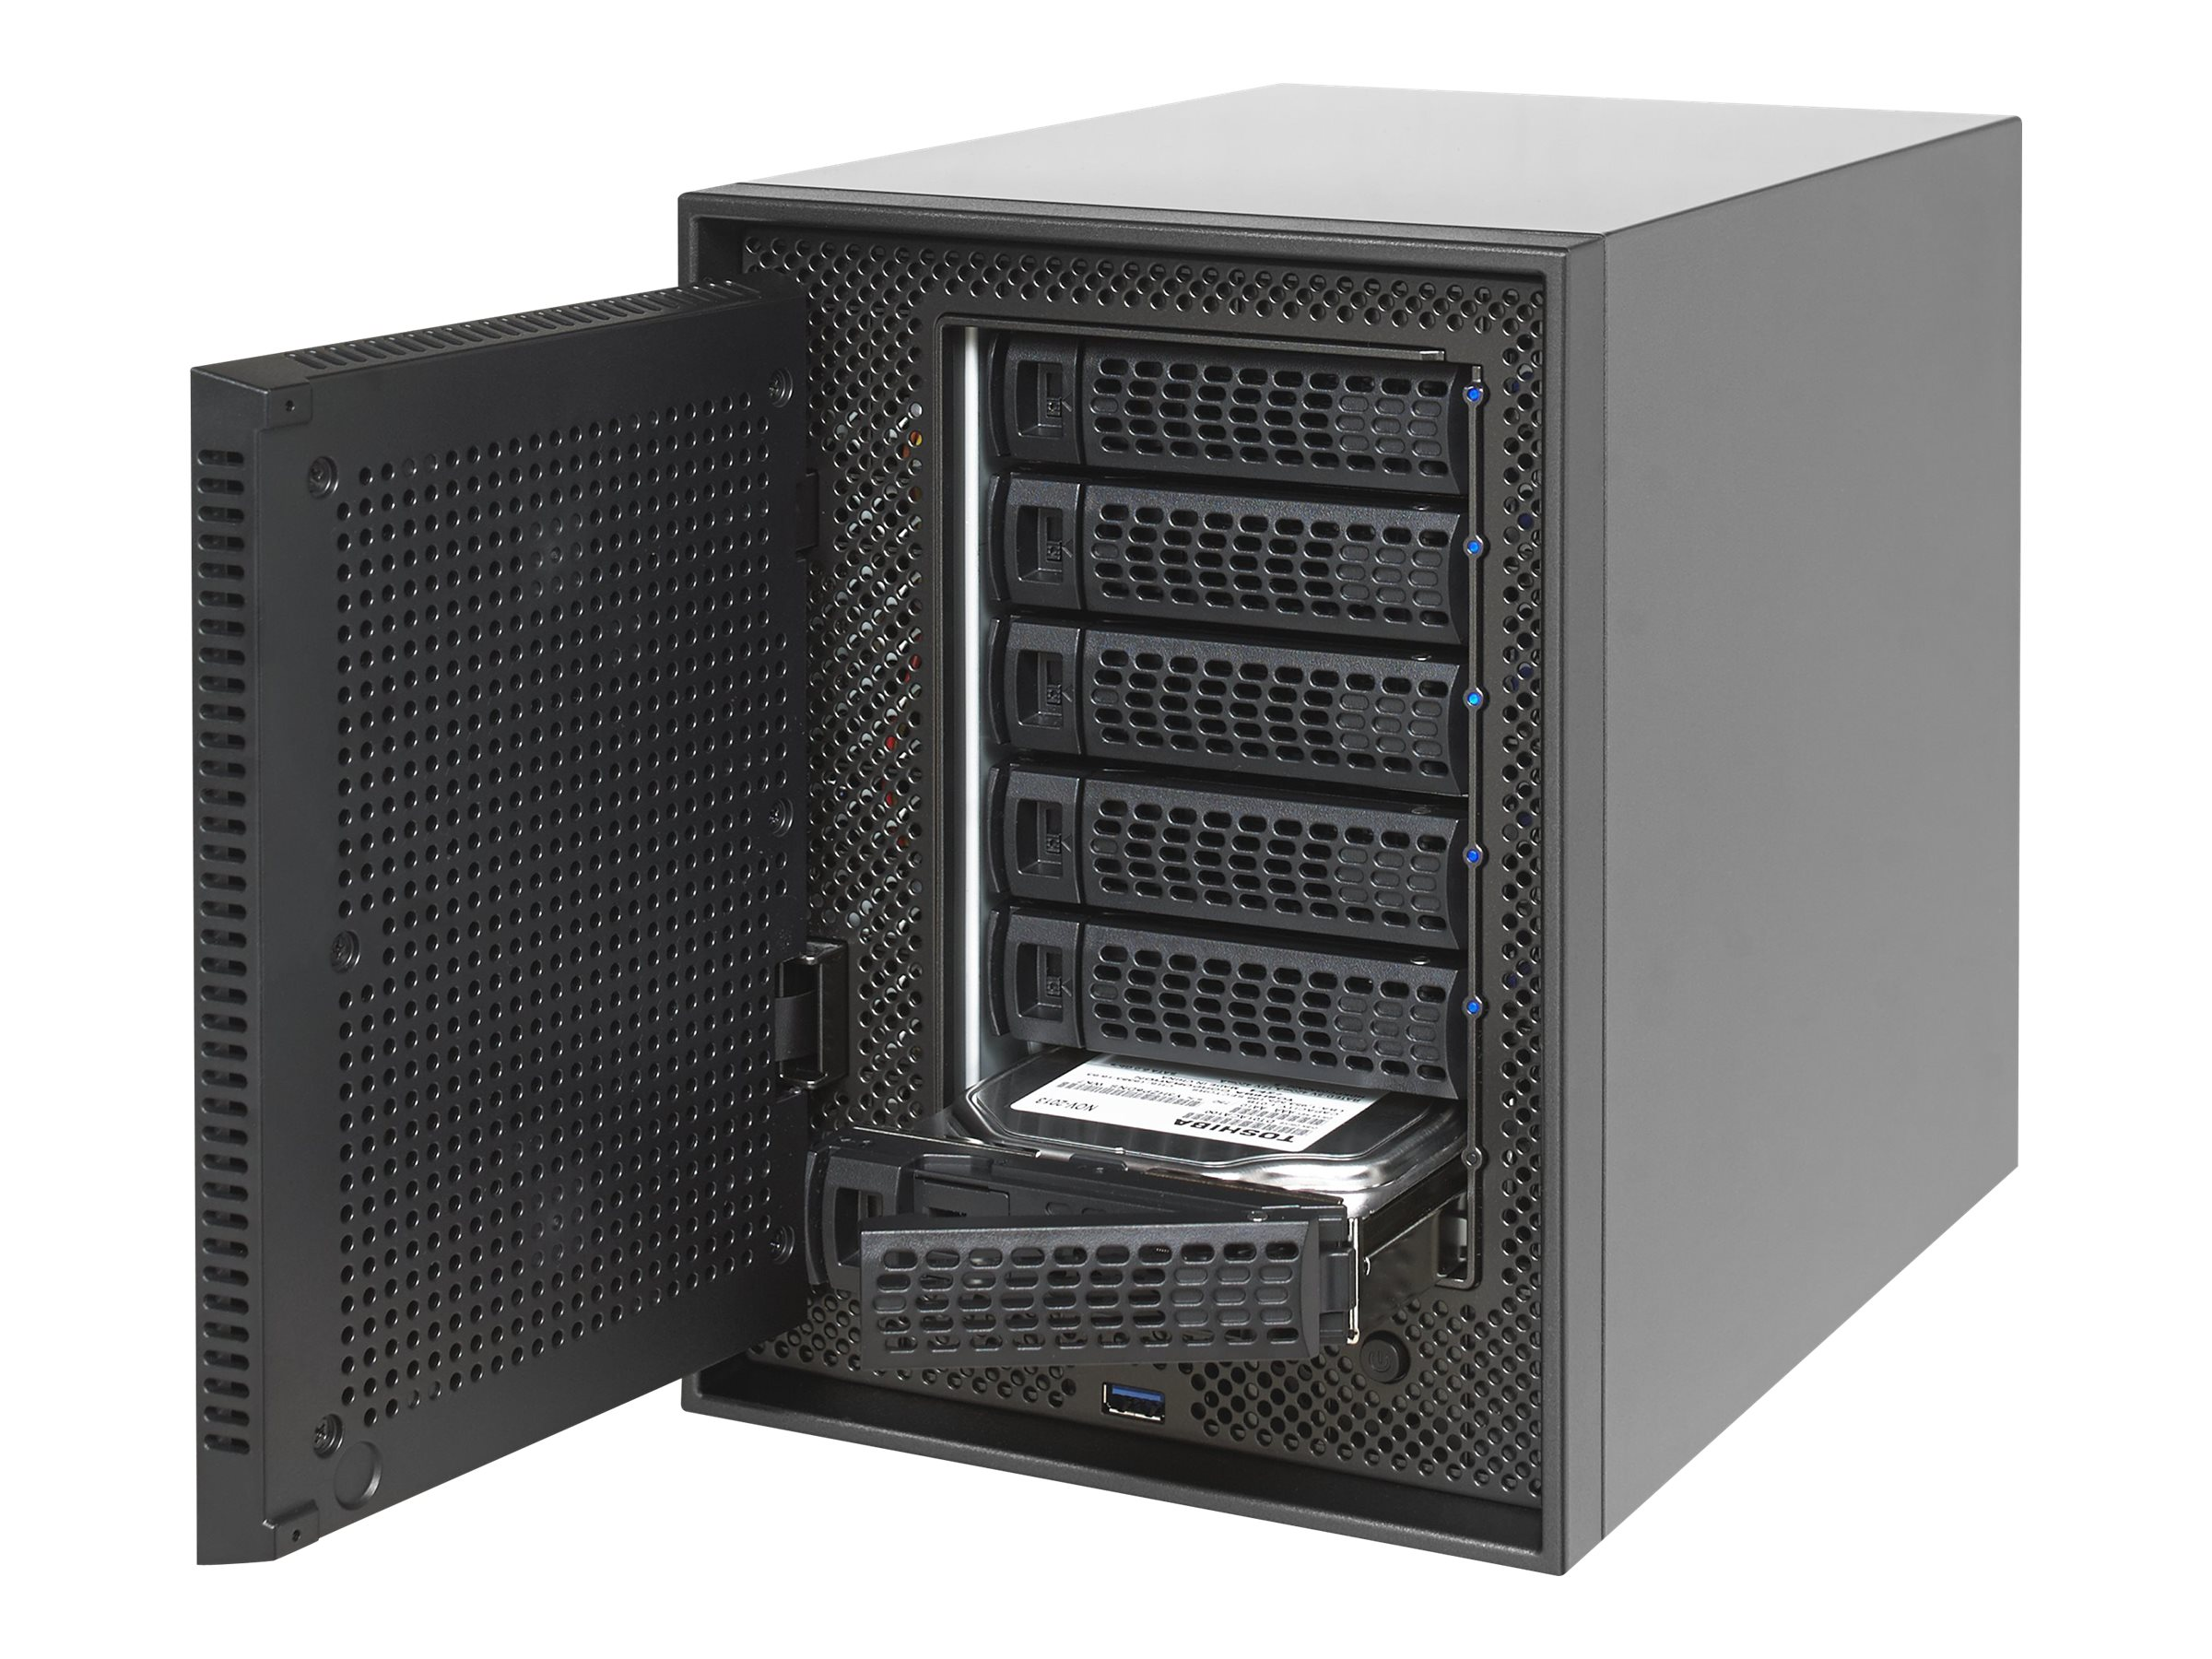 Netgear ReadyNAS 626X 6-Bay Network Storage w  Xeon Quad-Core Server Processor & 6X4TB Hard Drives